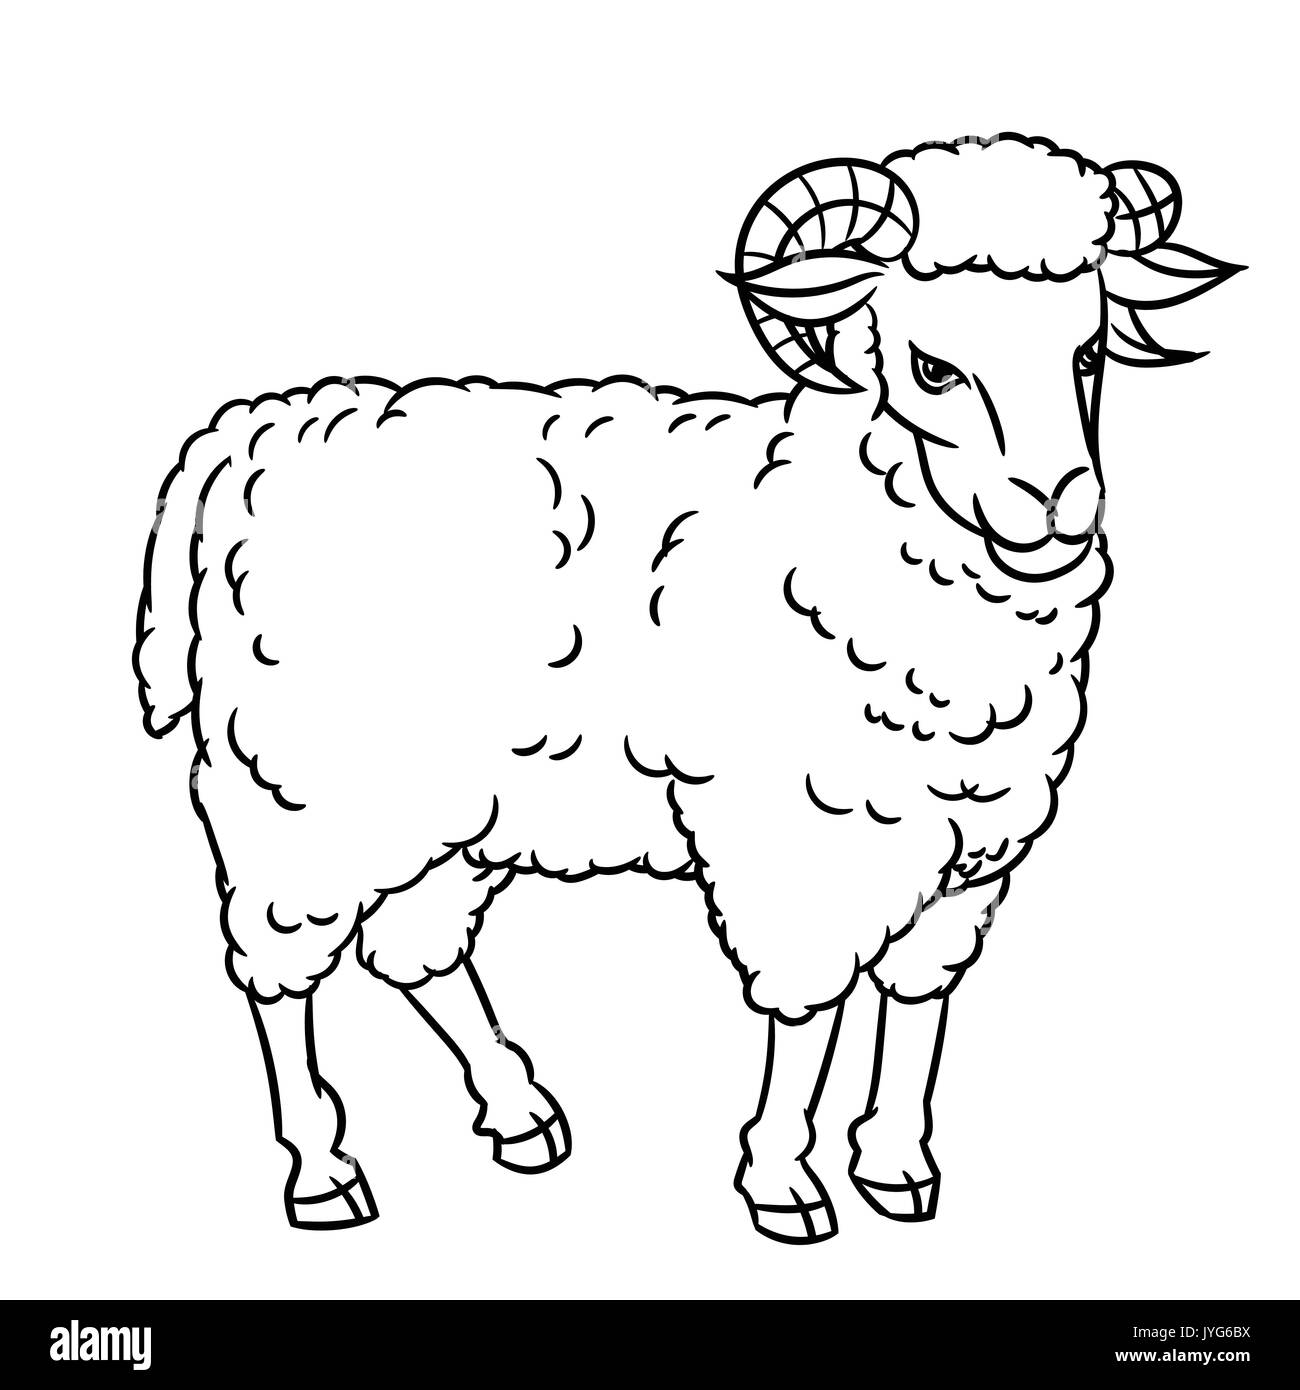 Hand drawing Sheep. farm animals set. Sketch graphic style. Design for education text book, coloring book. - Stock Vector